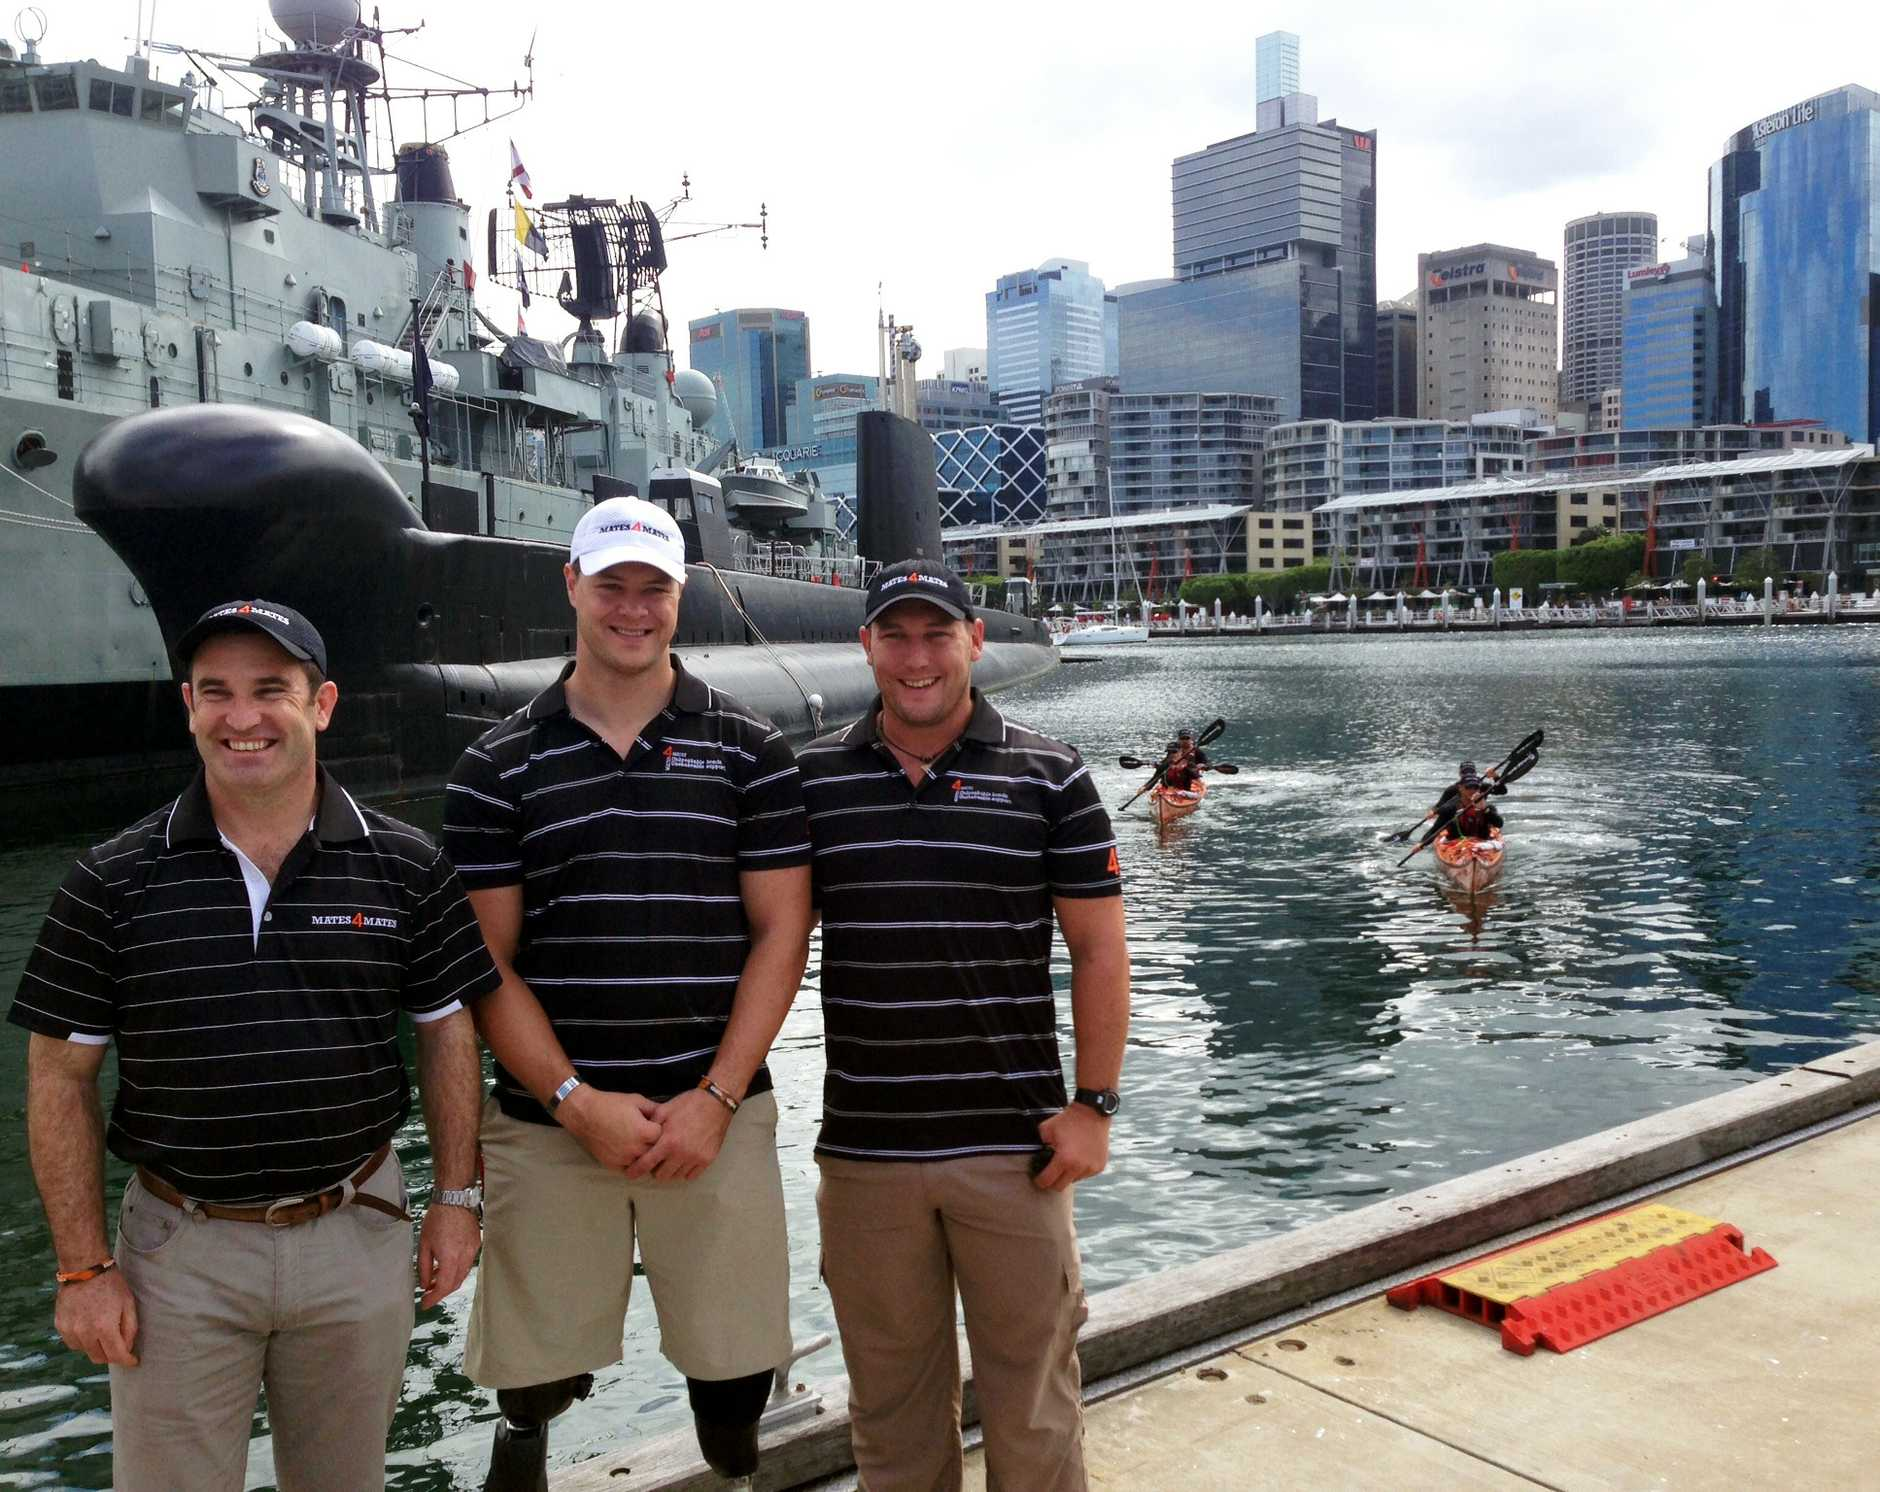 Mates4Mates COO Michael Quinn, Sapper Curtis McGrath and Corporal Tyson Murray posing for a photo at Darling Harbour in Sydney in 2013. McGrath was among 23 current and former Australian Defence Force personnel who clocked up to 1000 gruelling kilometres in the Mates4Mates sea kayak challenge.